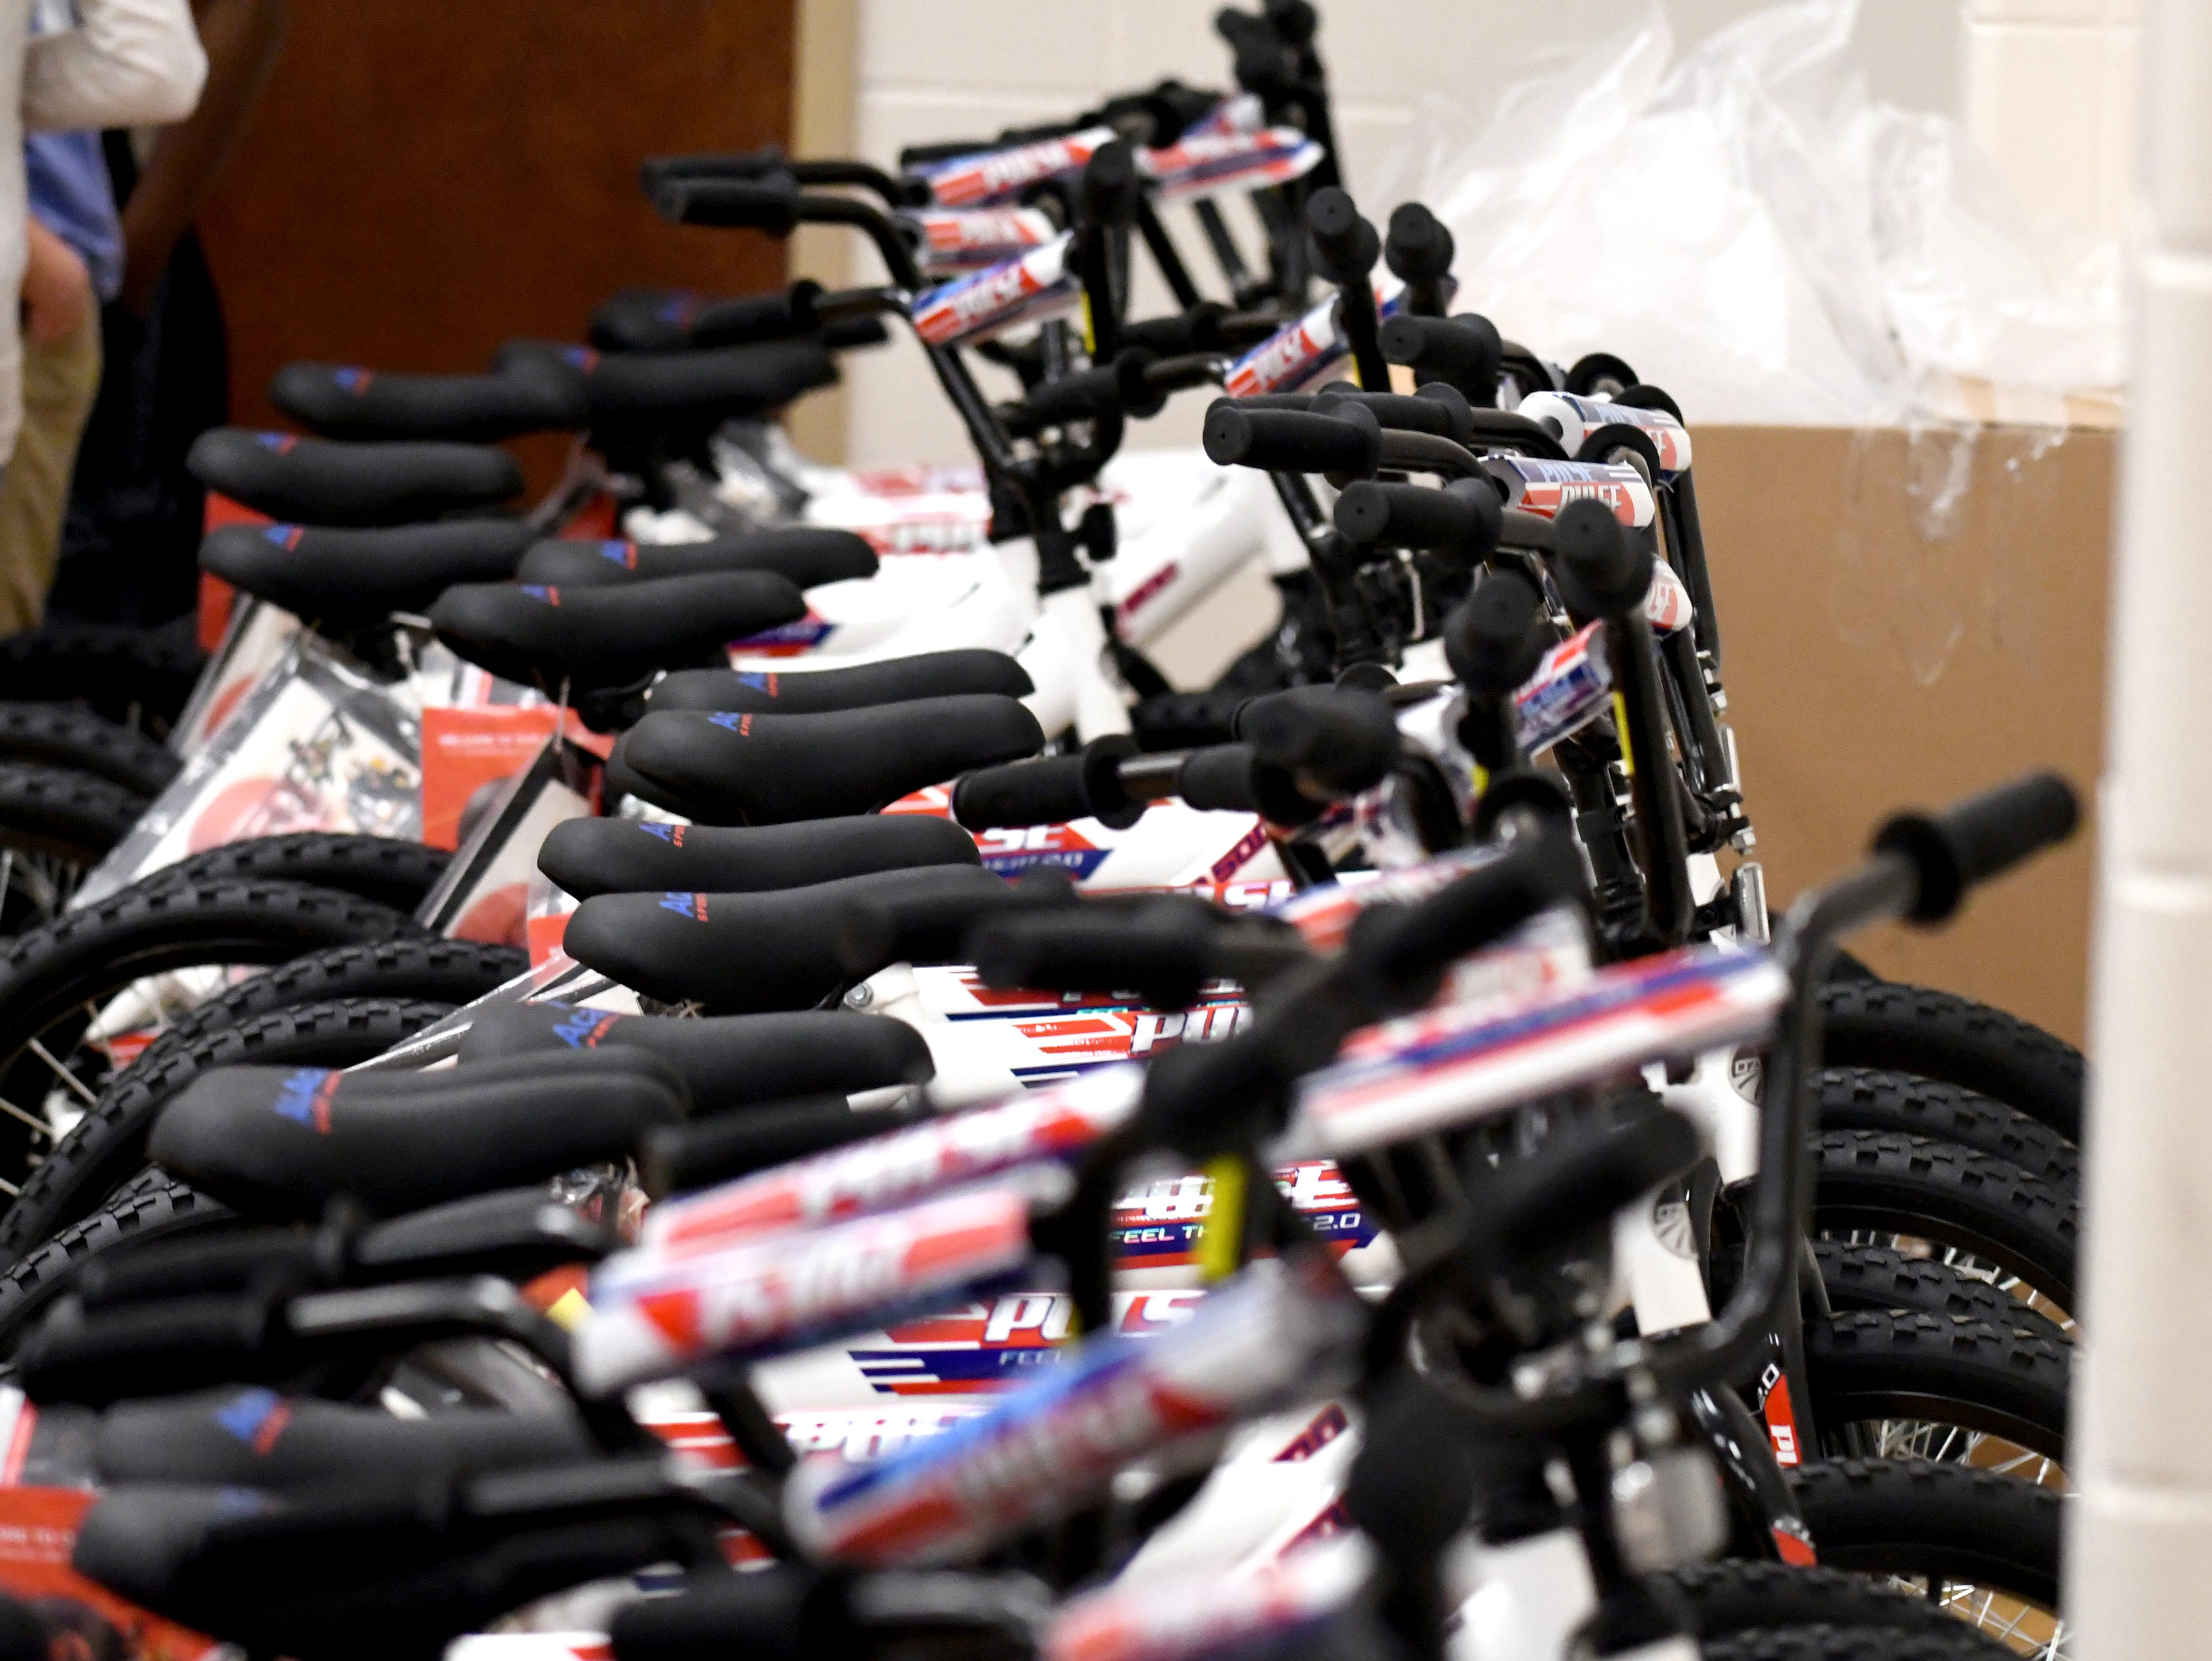 Students are selected to win a bicycle at Purvis Upper Elementary on Wednesday, December 5, 2018. Academy Sports and Outdoors donated 30 bicycles to deserving students to Purvis Upper Elementary as part of its annual bike donation program.